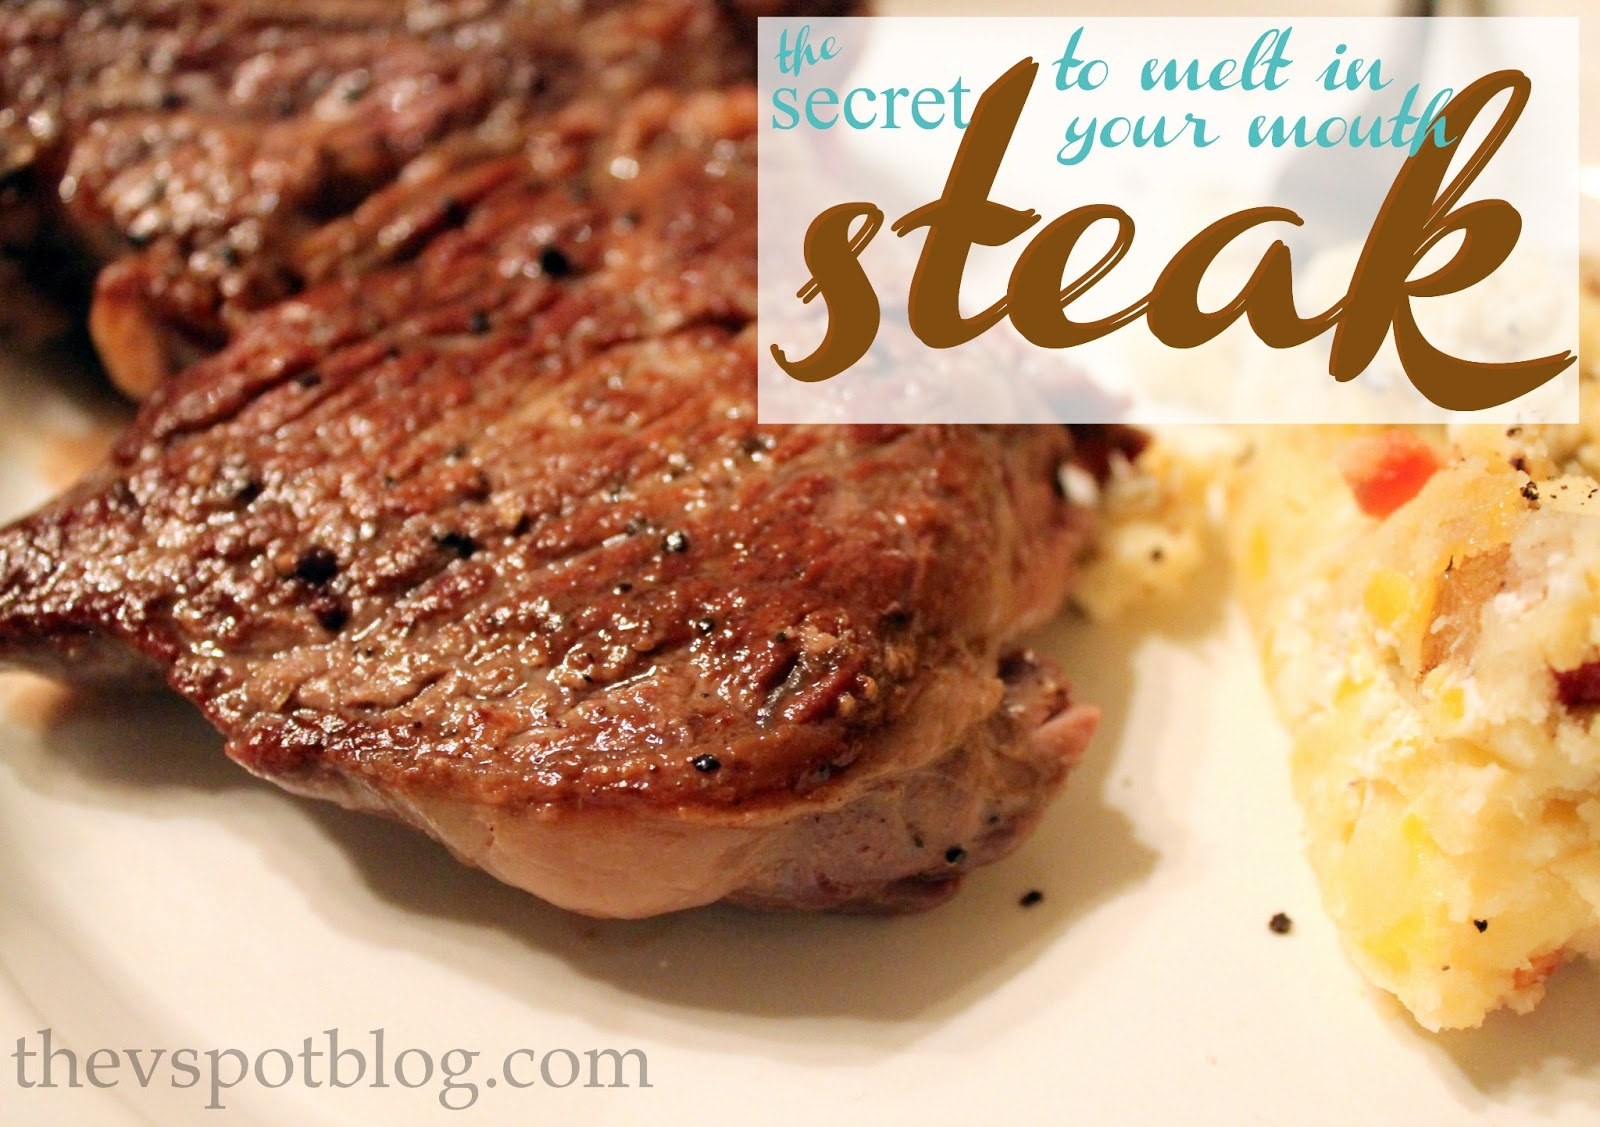 The Secret To Melt In Your Mouth Steaks Make Cheap O Cuts Taste Like Prime The V Spot